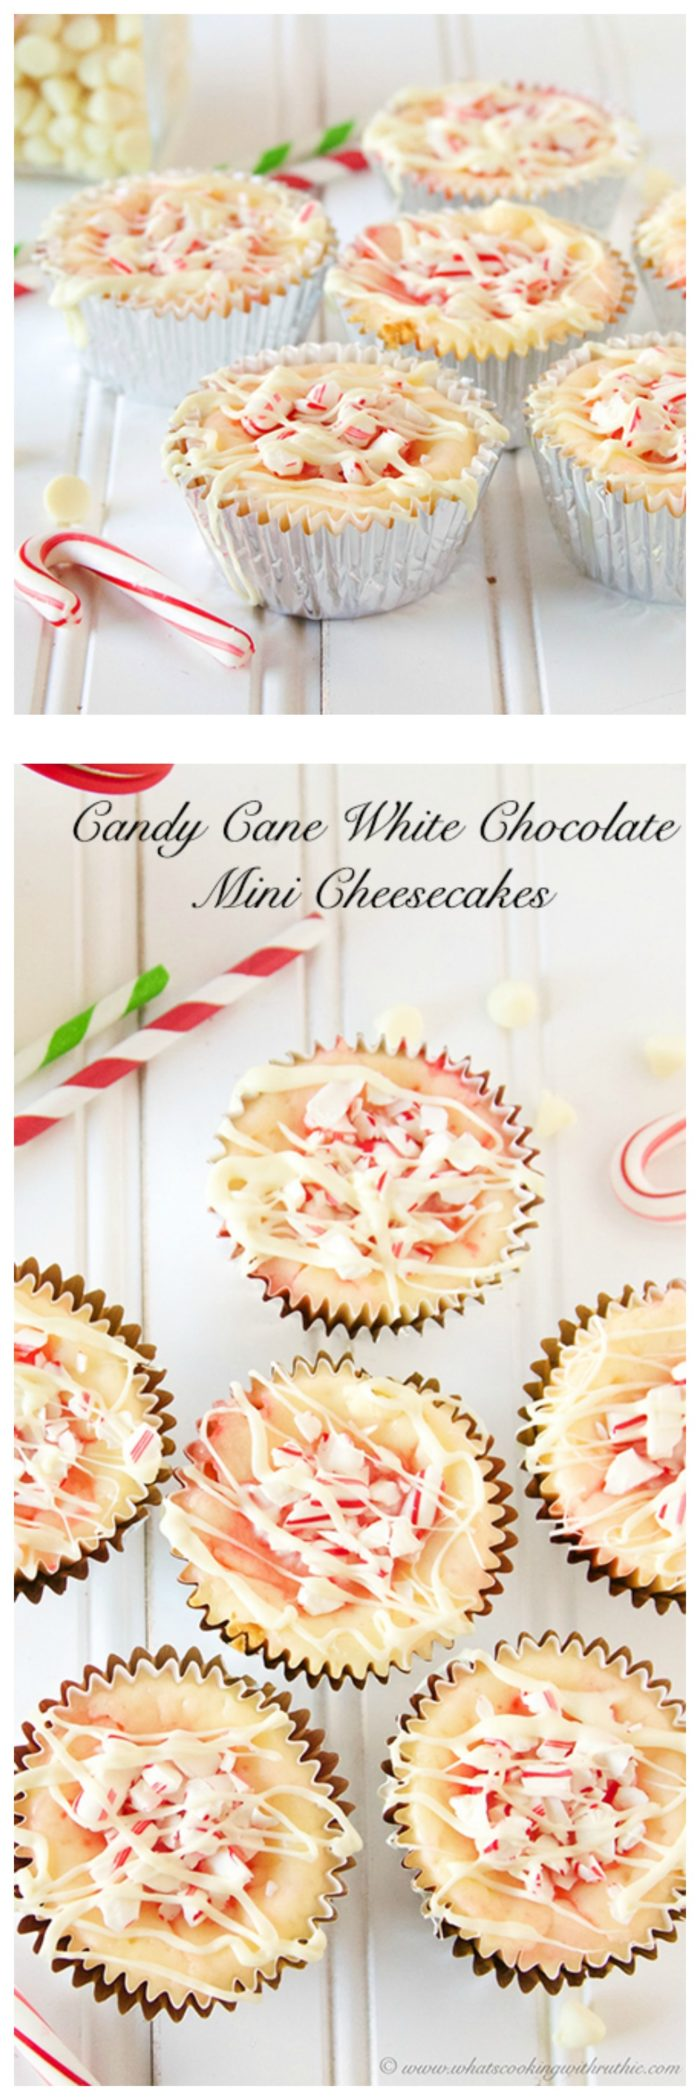 Candy Cane White Chocolate Mini Cheesecakes on www.cookingwithruthie.com will be loved at any holiday gathering!